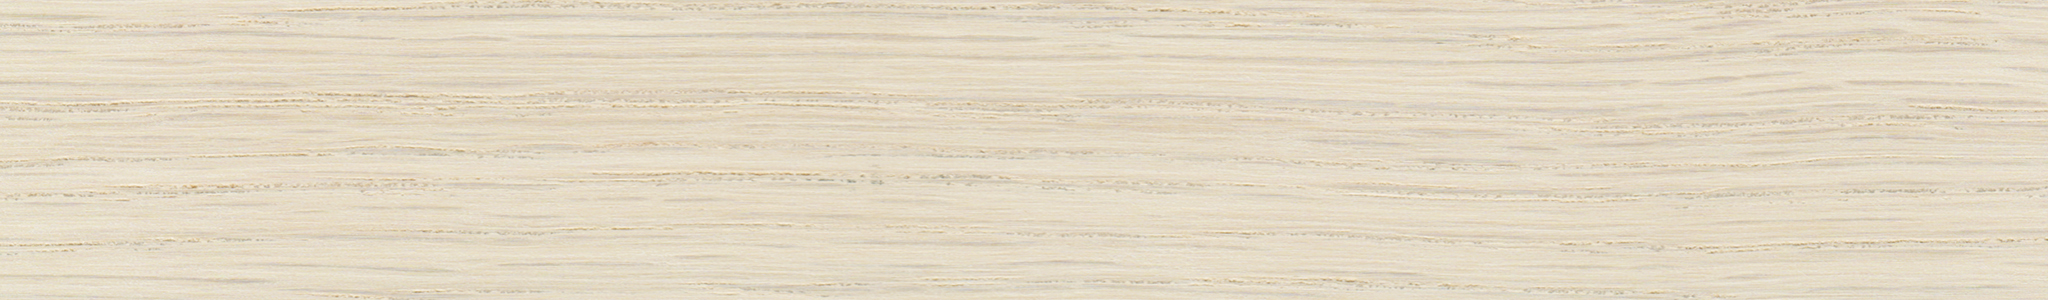 HD 74030 Veneer Edge American Oak Thick